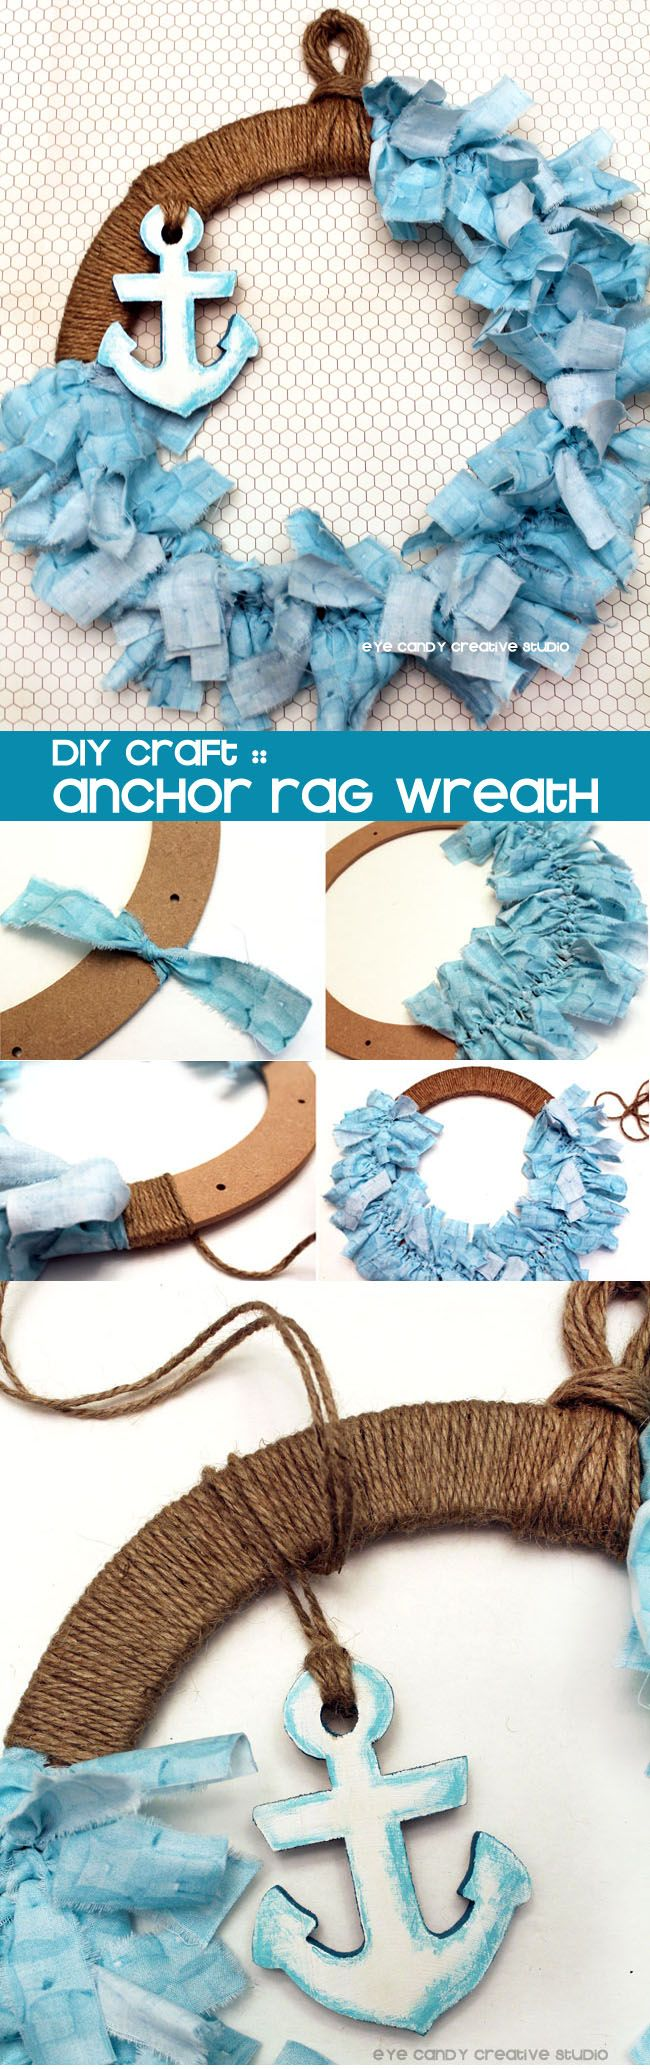 Summer Camp Diy Nautical Anchor Rag Wreath Diy Crafts